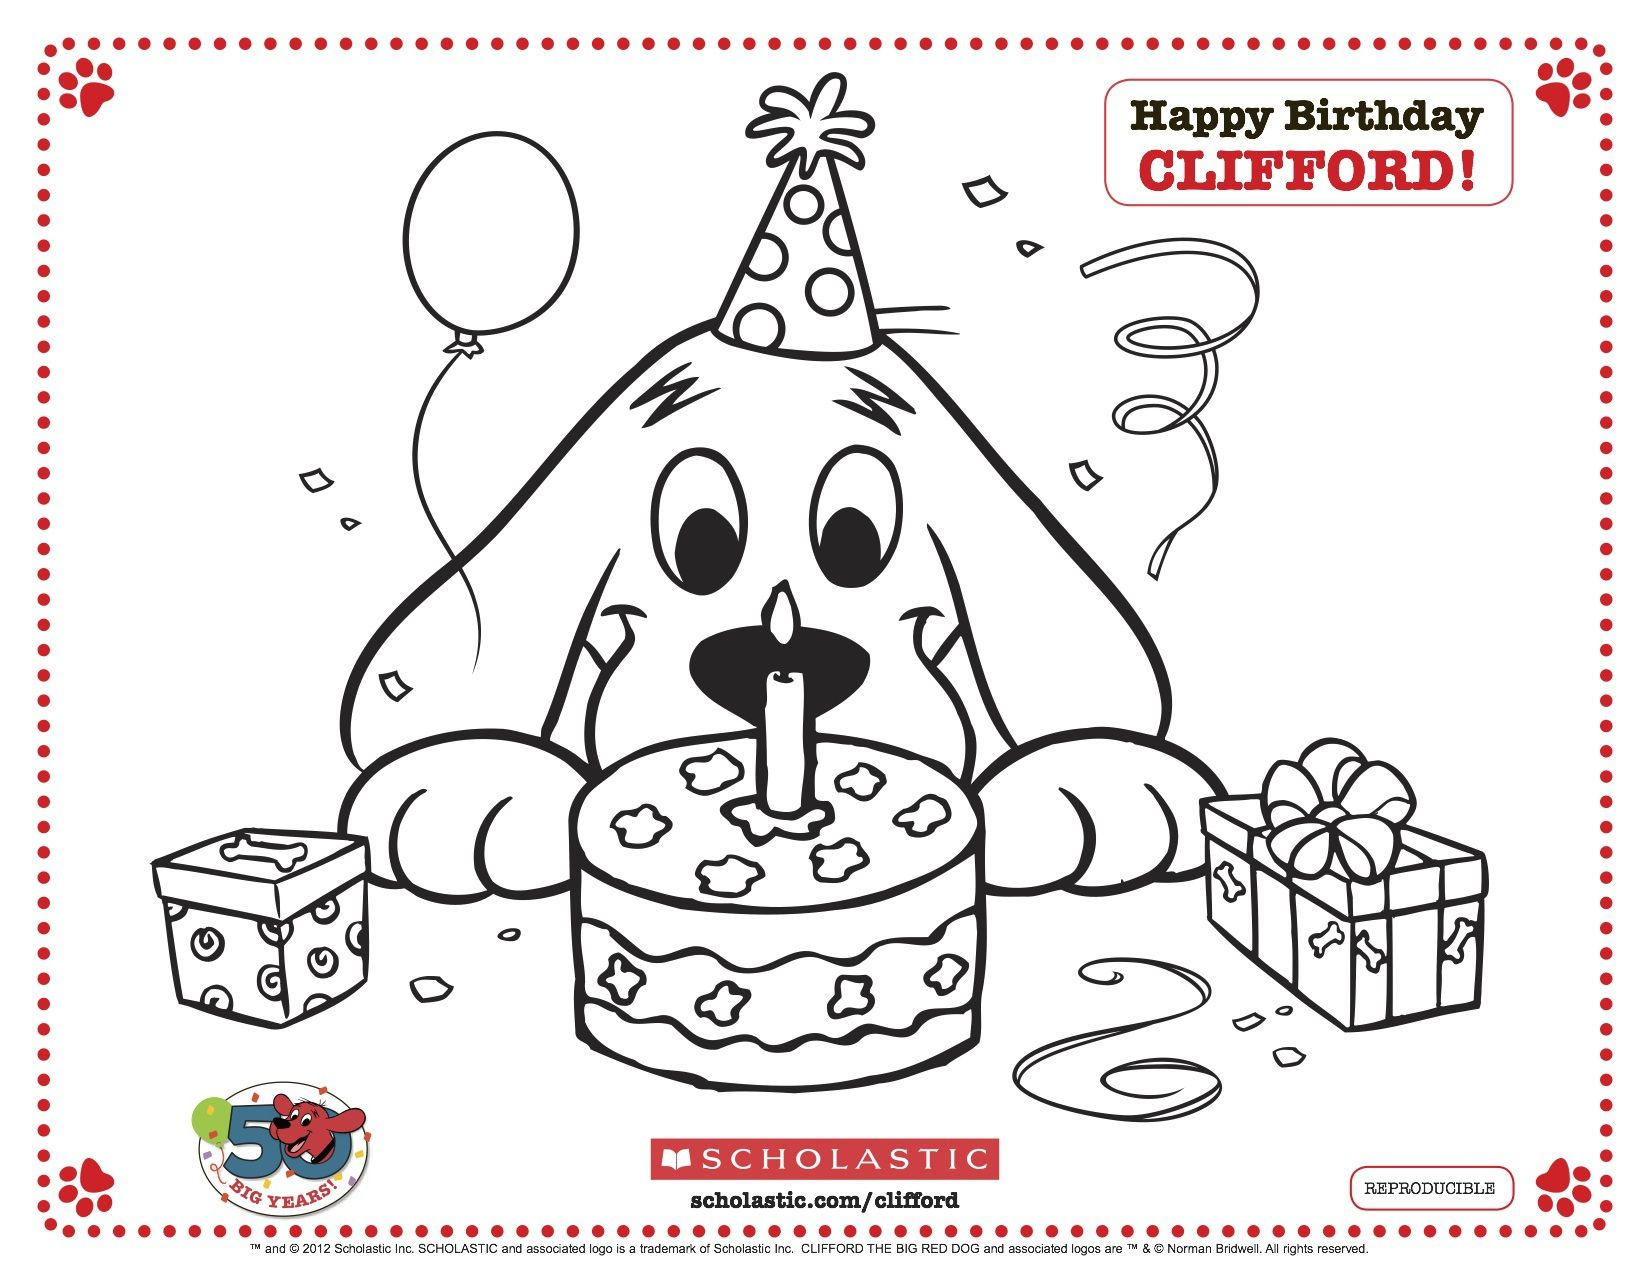 Pbs kids coloring games for free - Explore Pbs Kids Puppy Party And More Happy 6th Birthday Printable Coloring Pages